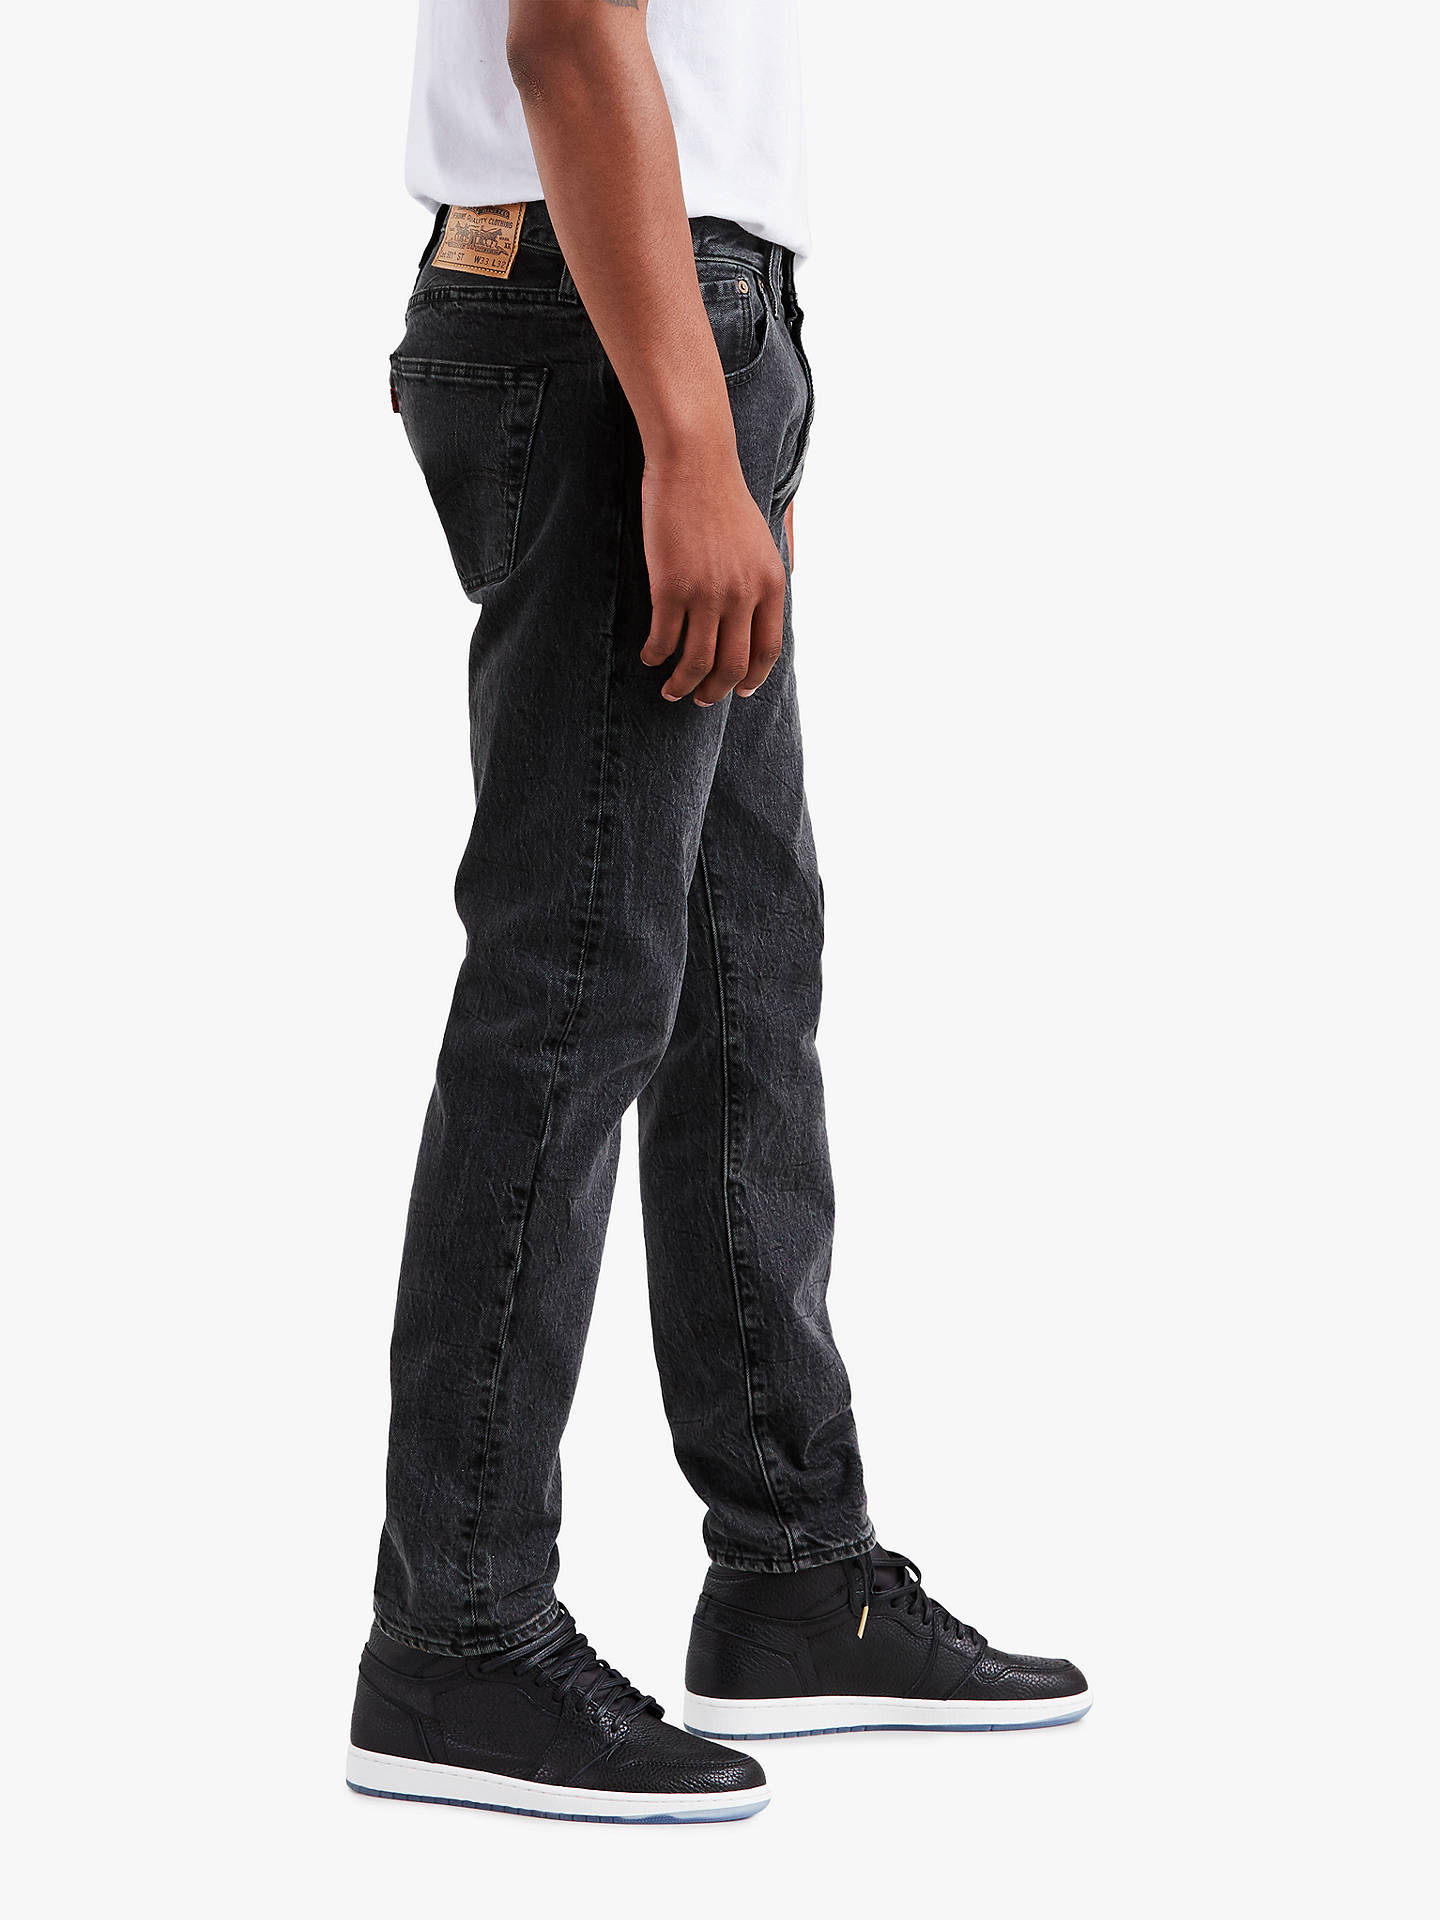 c29f5b83f4a ... Buy Levi's x Justin Timberlake 501 Slim Tapered Fit Jeans, Washed  Black, 30S Online ...